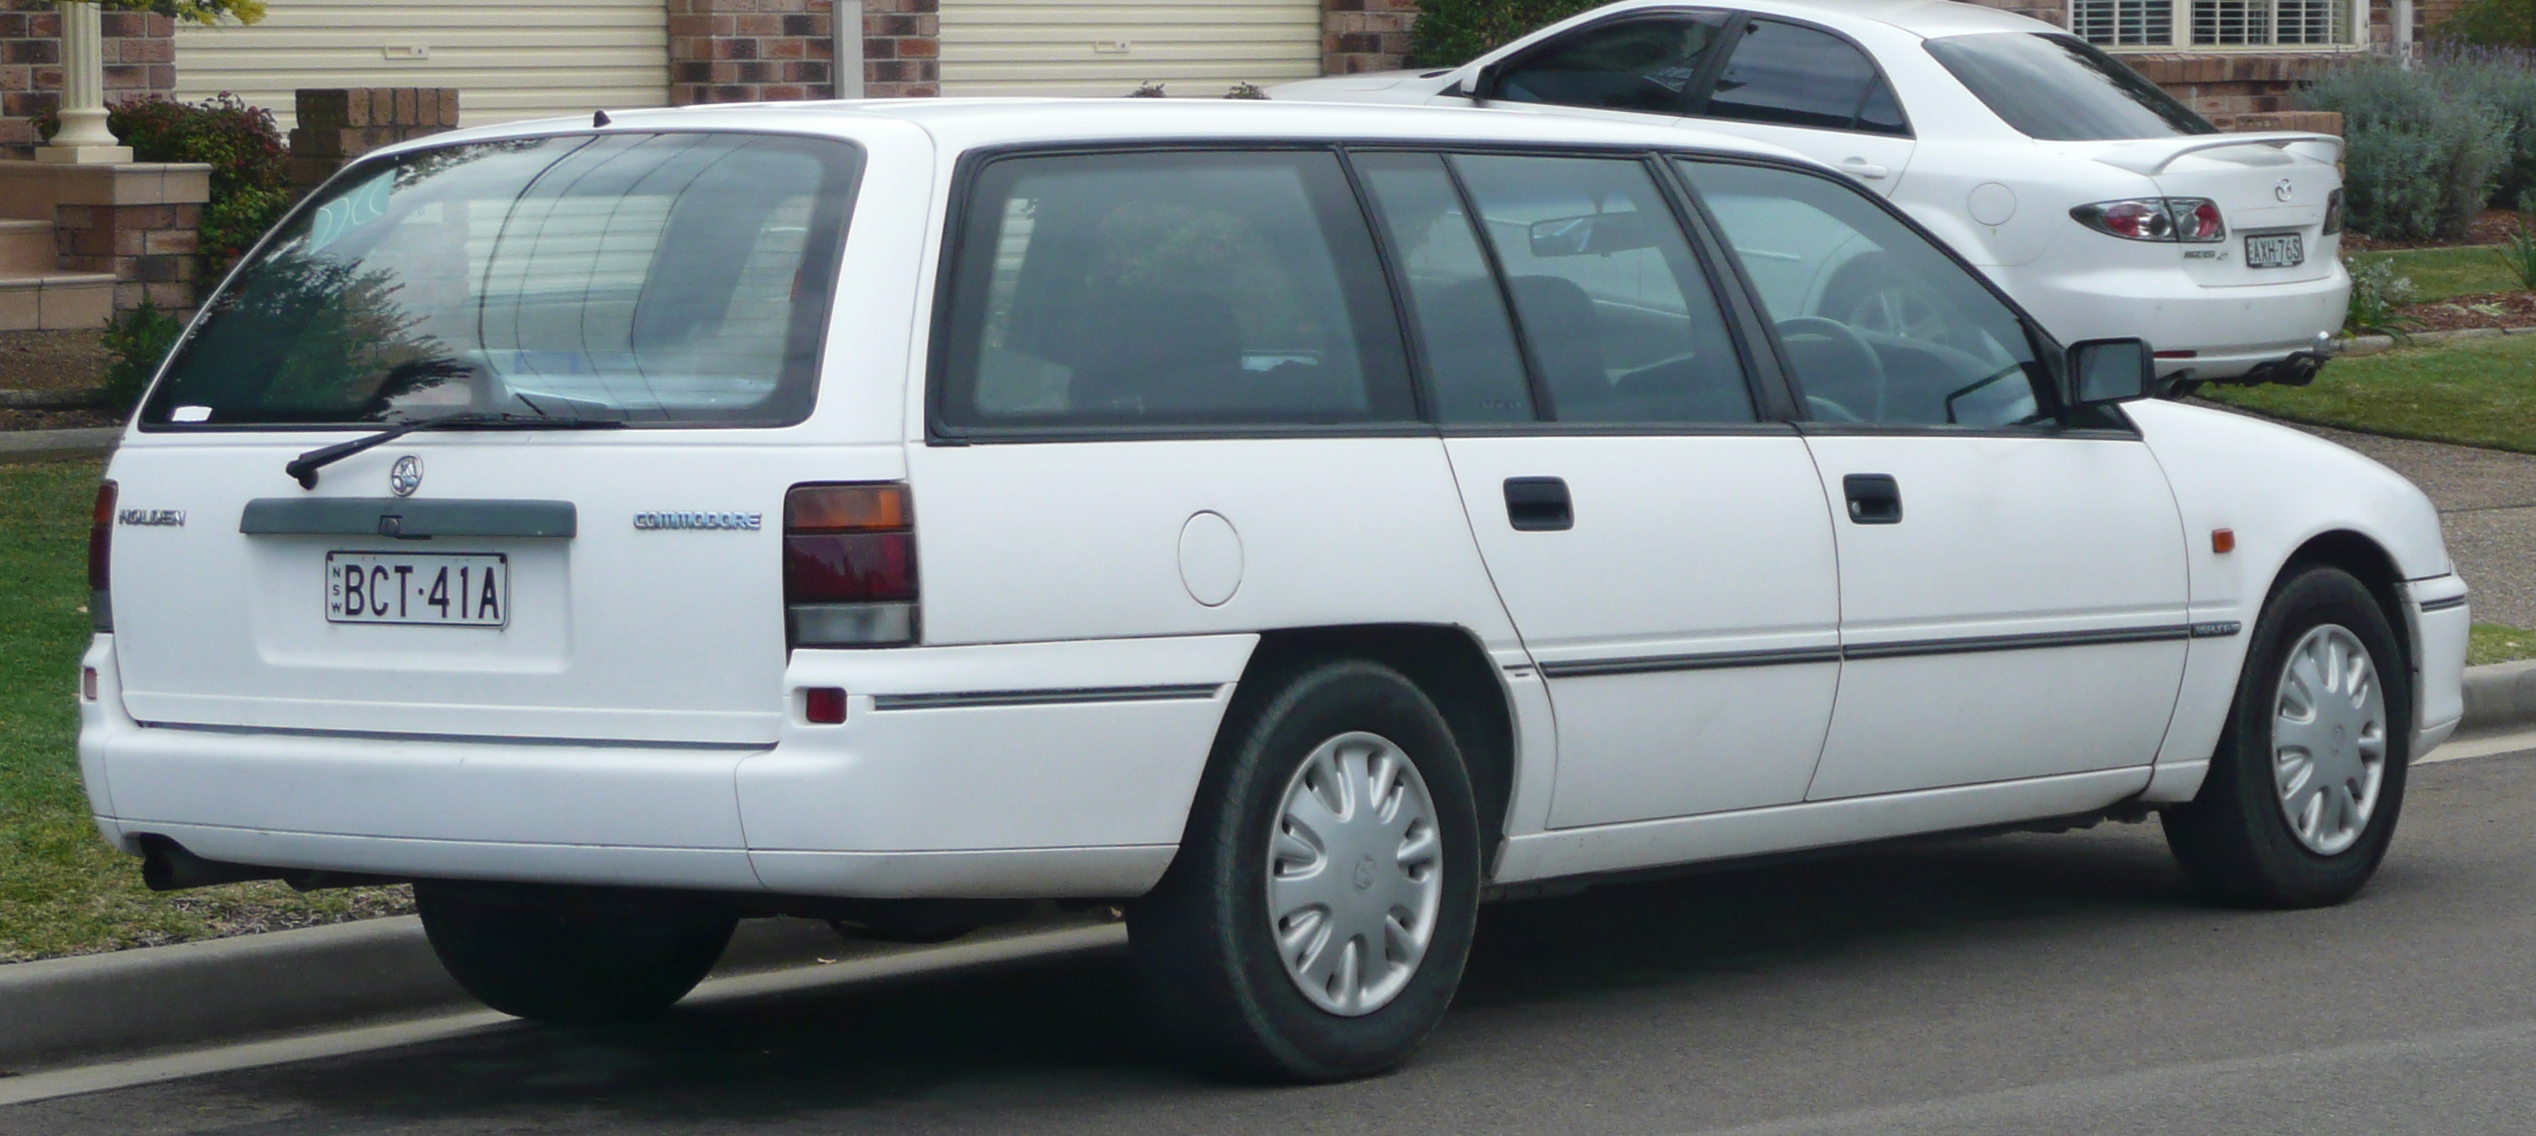 1995-1996_holden_vs_commodore_executive_station_wagon.jpg